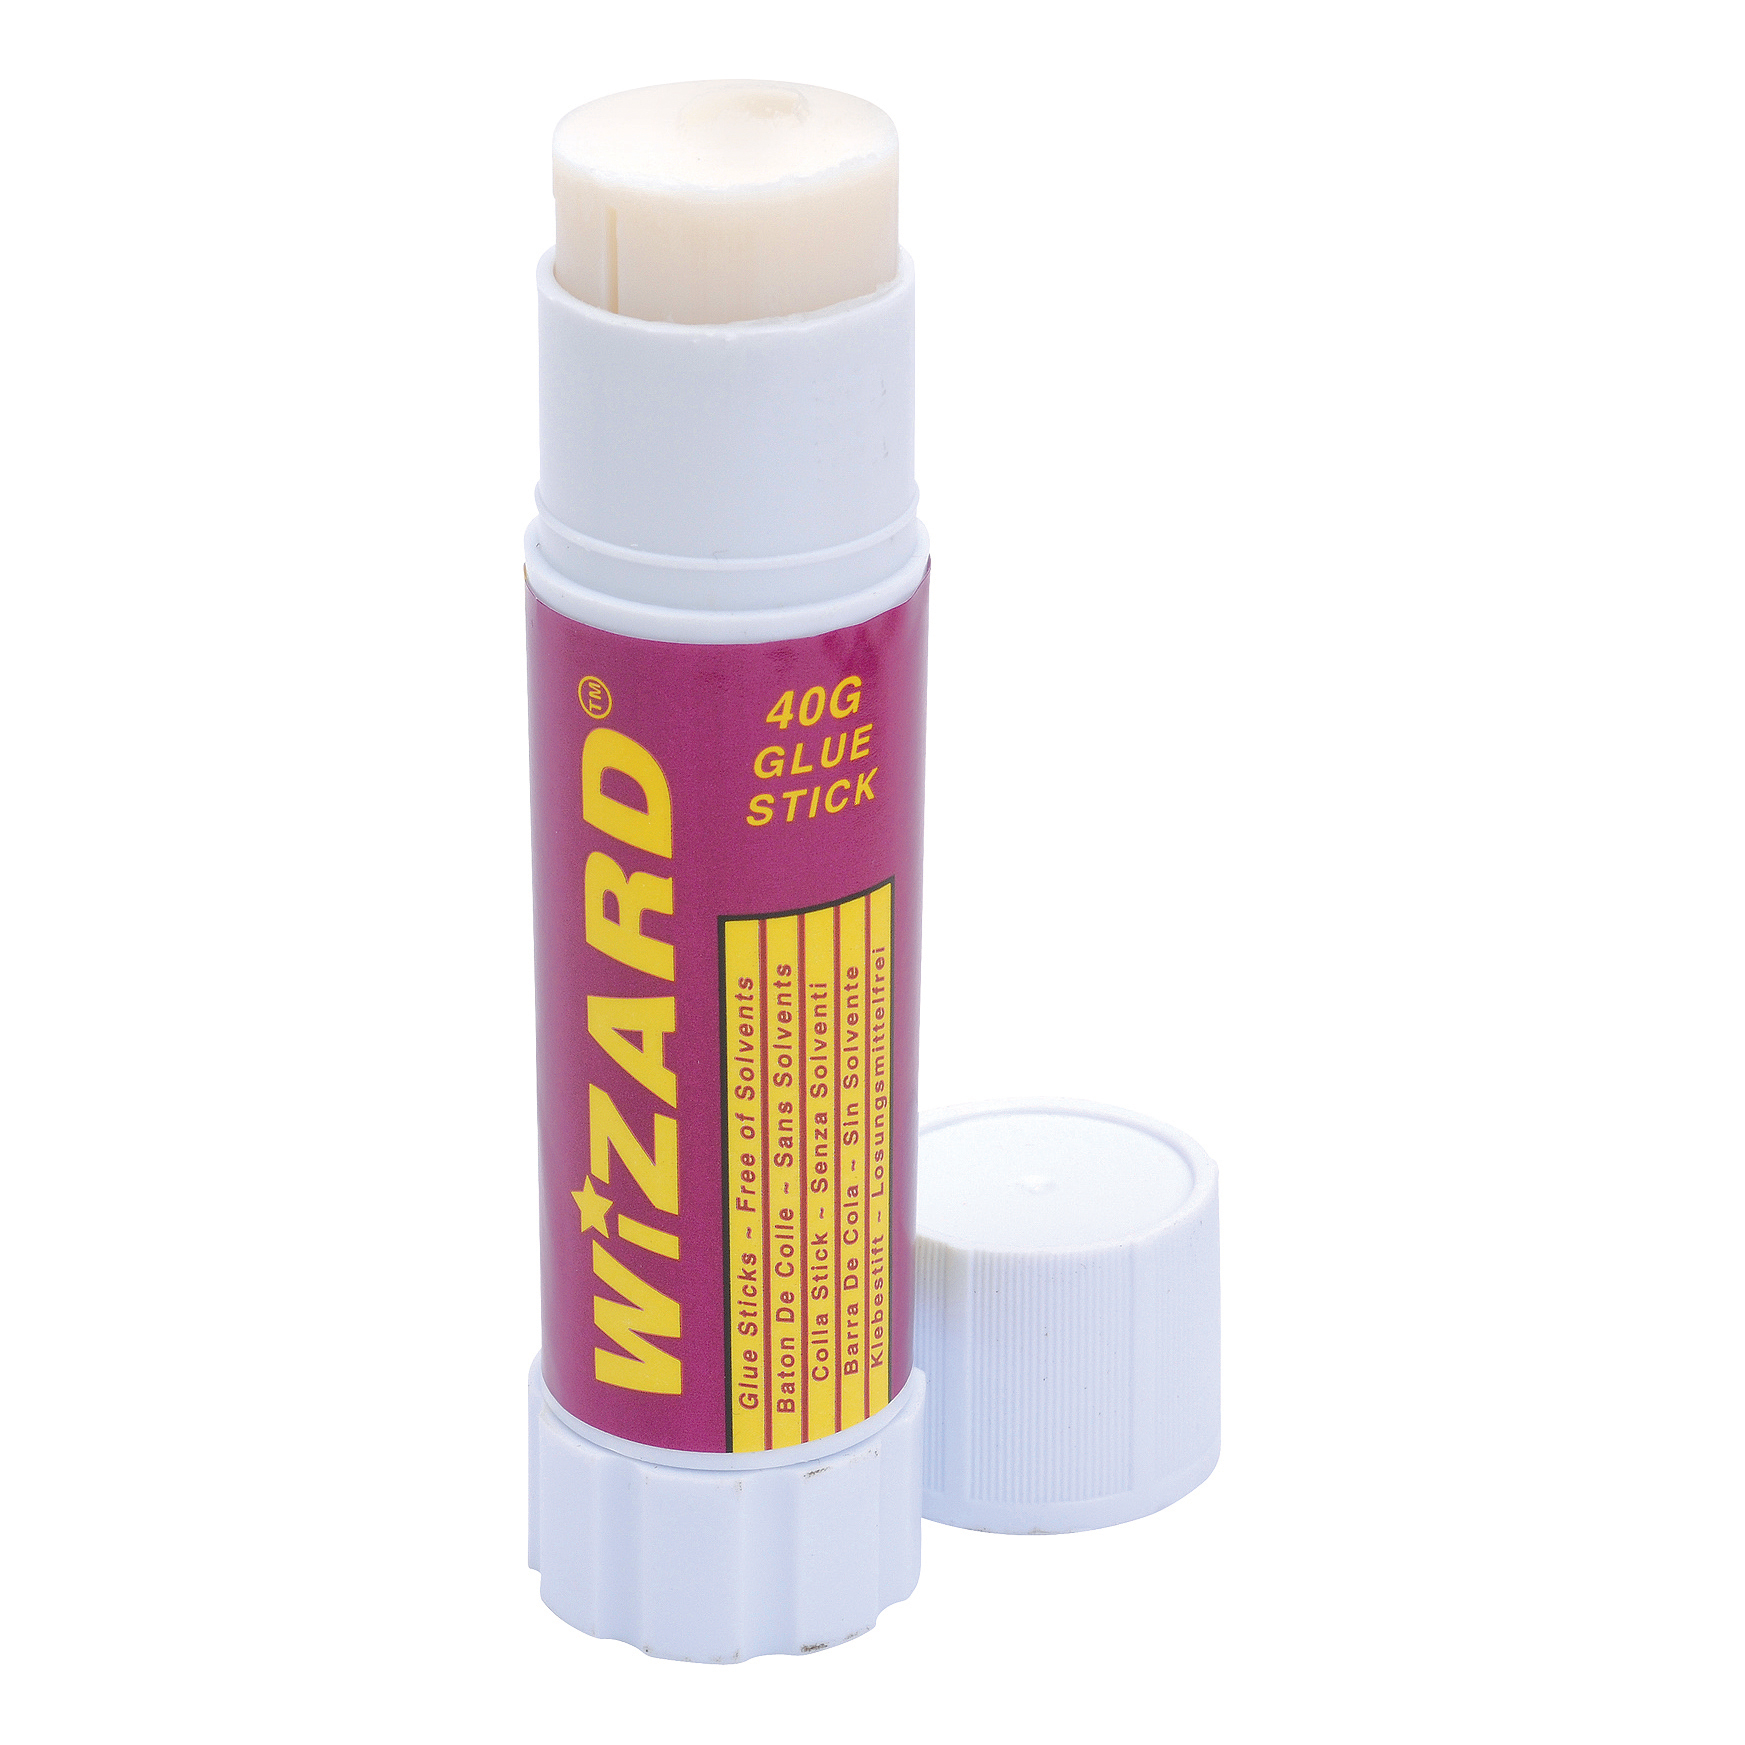 5 Star Value Glue Stick 40gm